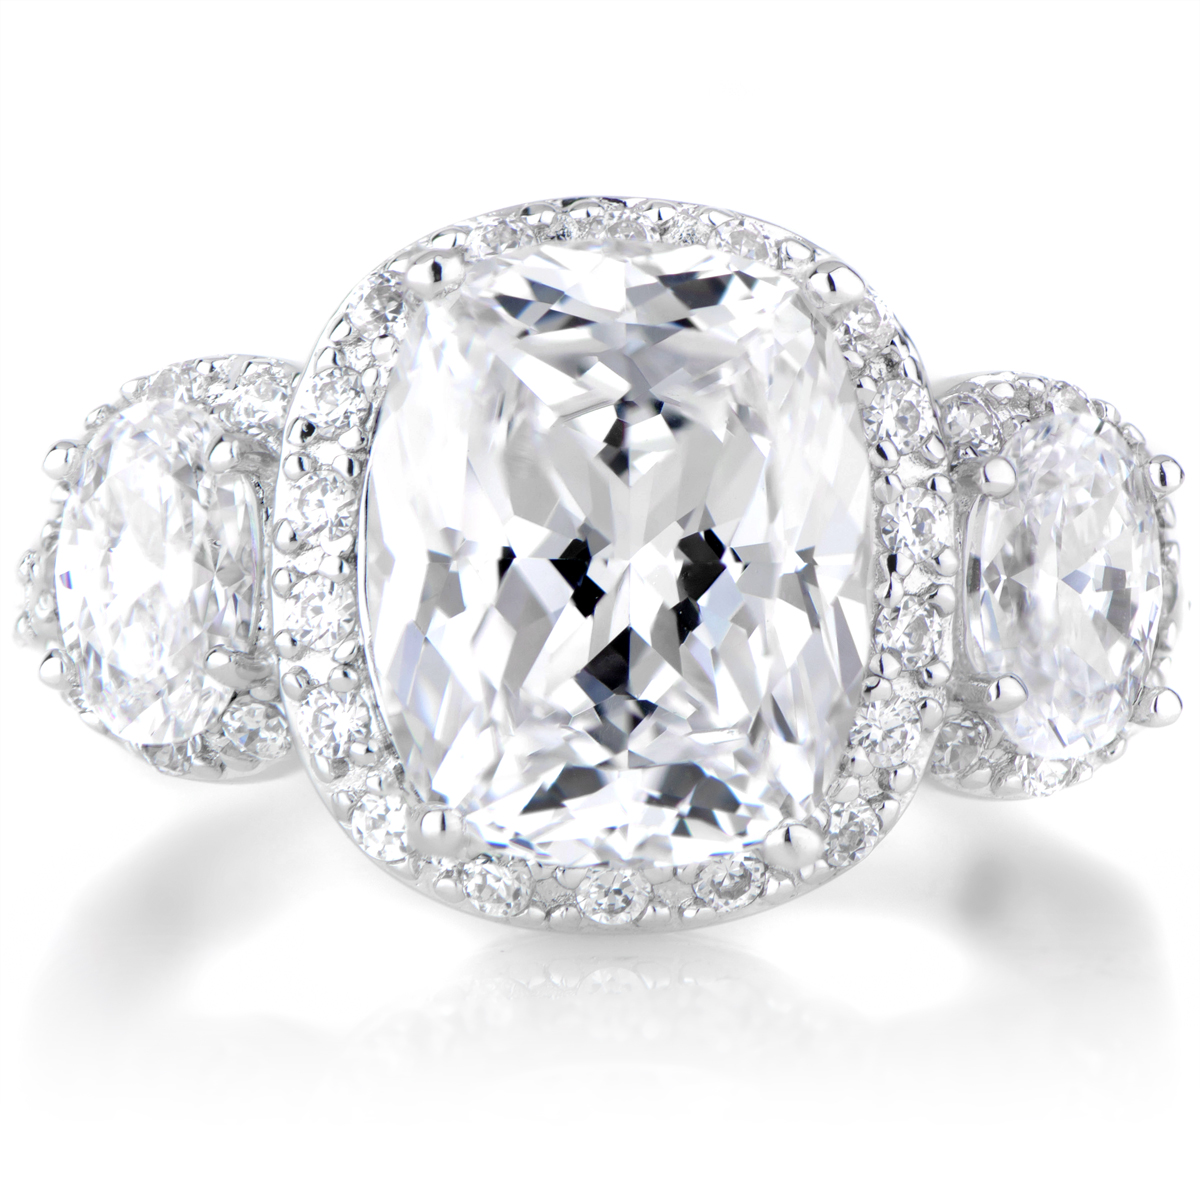 Emily's 3 Stone Halo Cushion Cut Engagement Ring